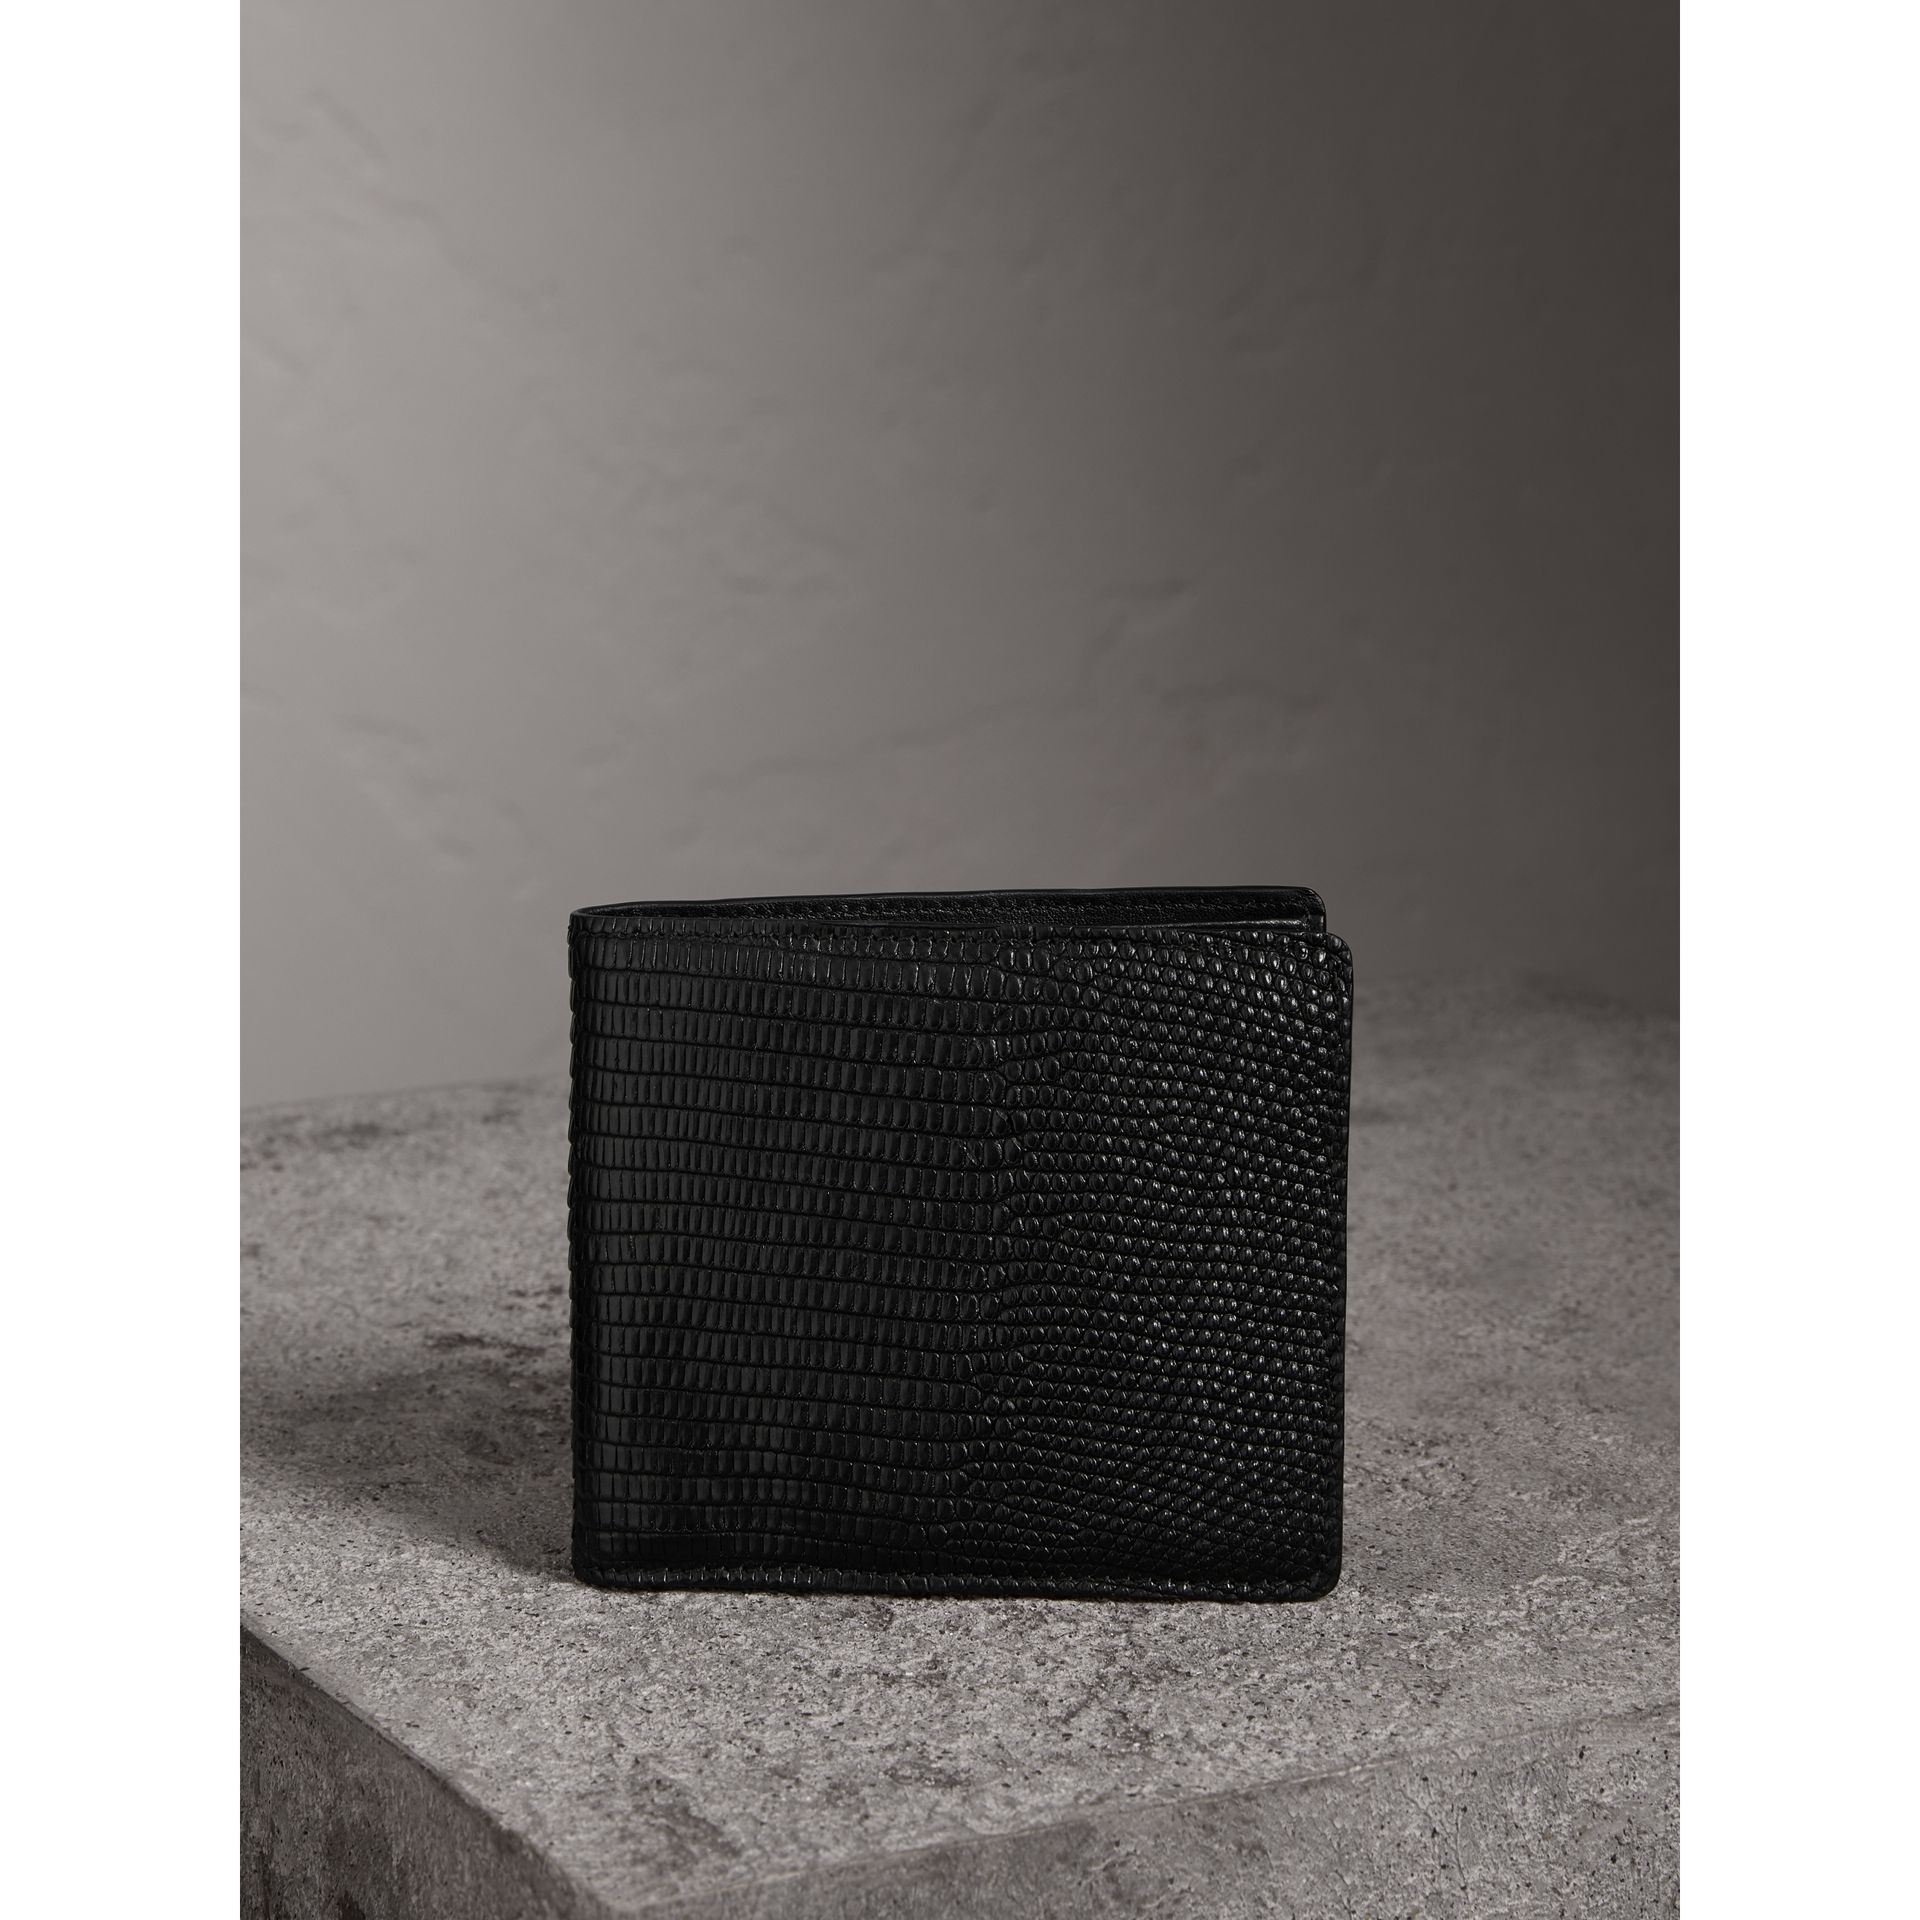 Lizard International Bifold Wallet in Black - Men | Burberry - gallery image 4